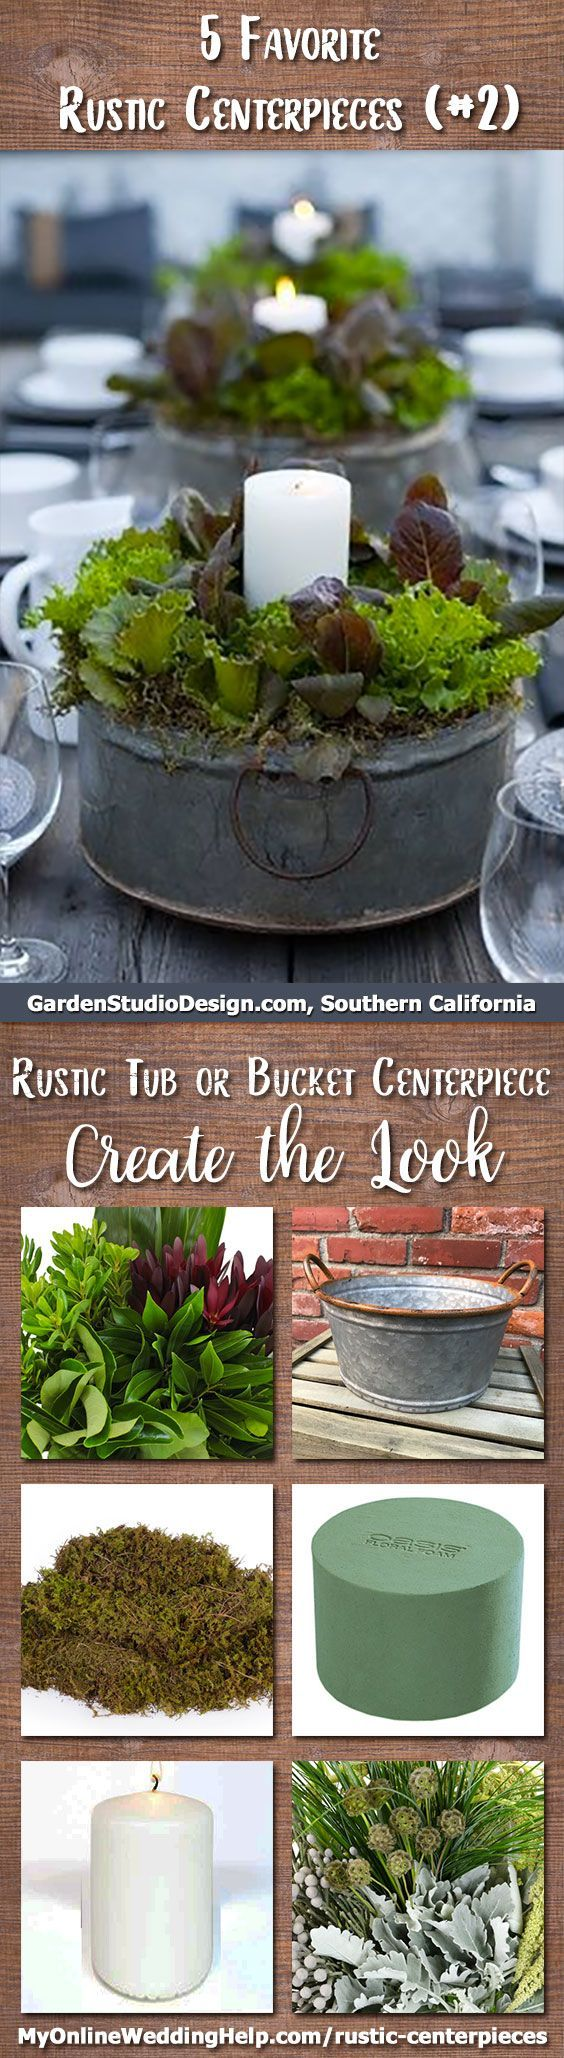 Galvanized rustic tub or bucket centerpiece. This is made of multicolor greenery (well, lettuce...but you can use regular greenery) and a pillar candle inside a weathered-looking steel tub. There are links and information on the page on how to DIY your own centerpiece and/or contact vendors and artisans. | Arrangement by Garden Studio, a full service landscape design company in Southern California.: Find your decor inspo at…